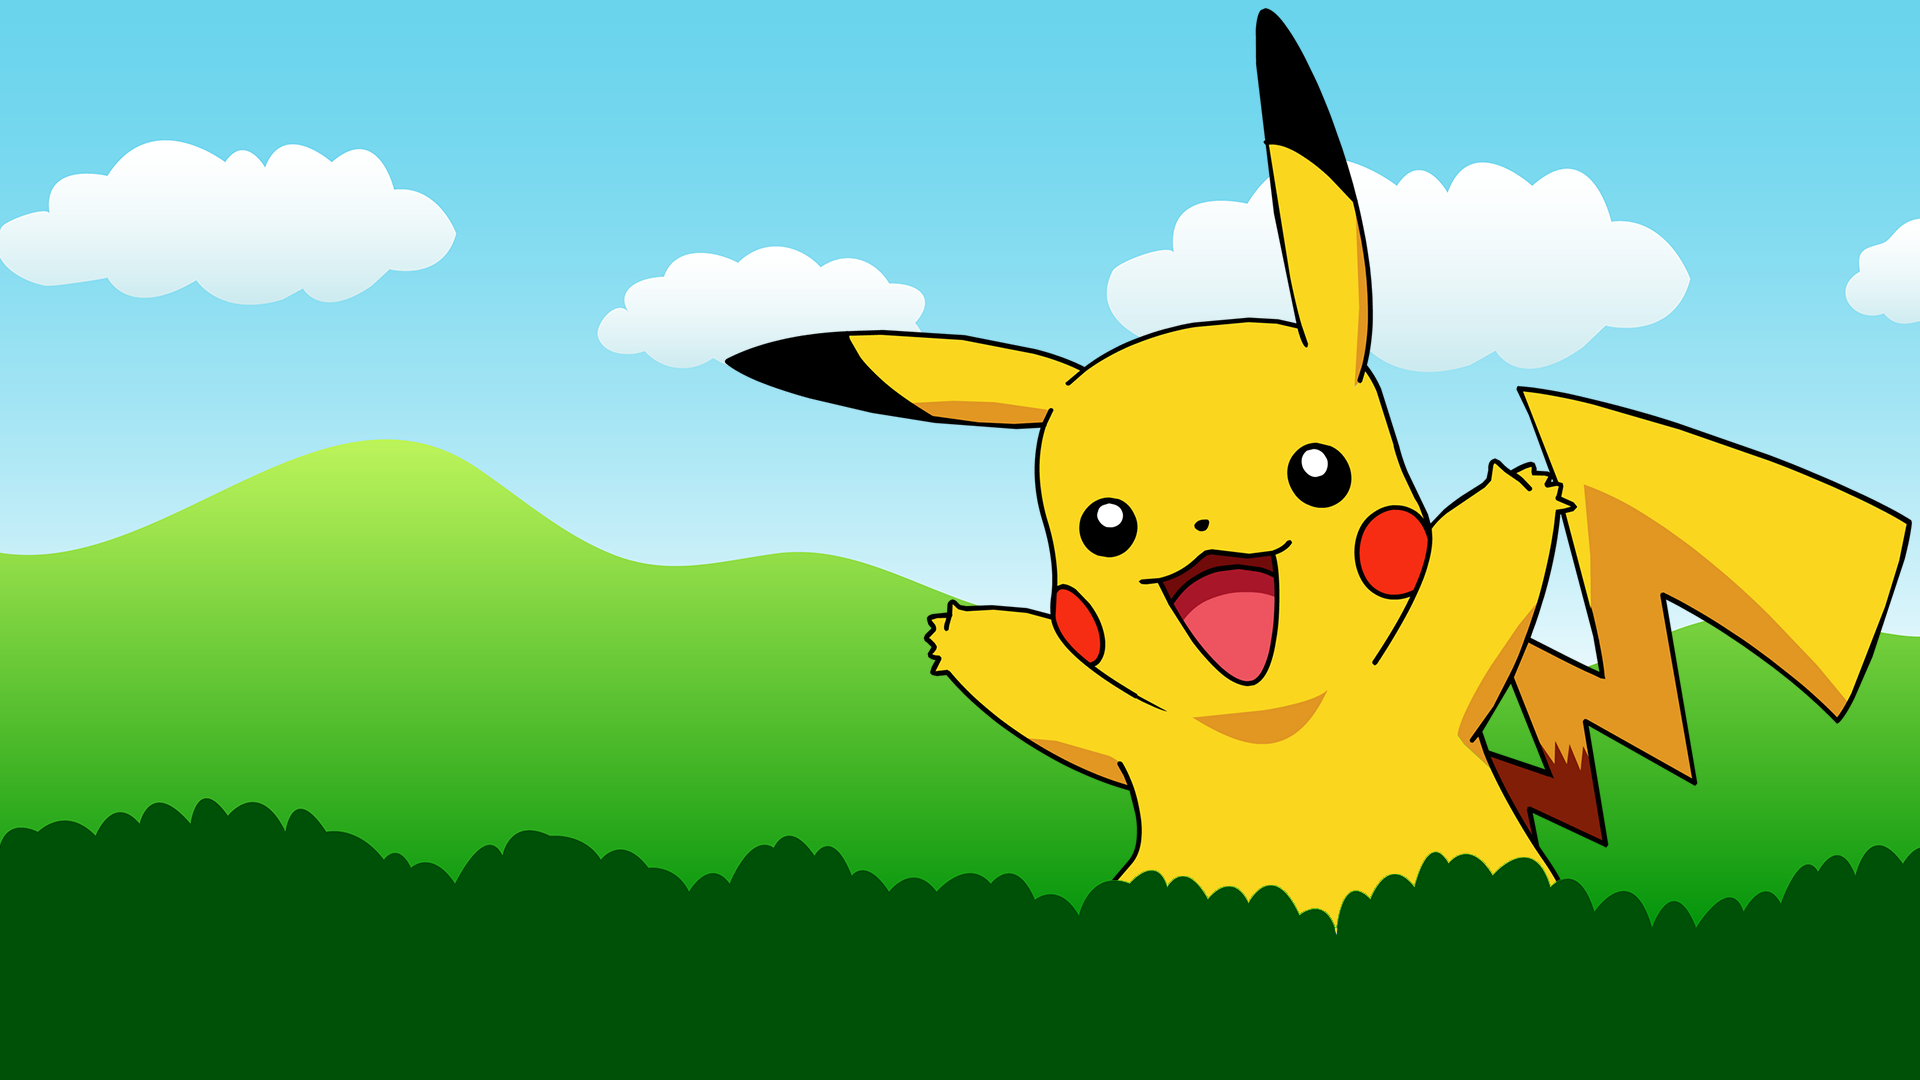 cute pikachu wallpaper 64928